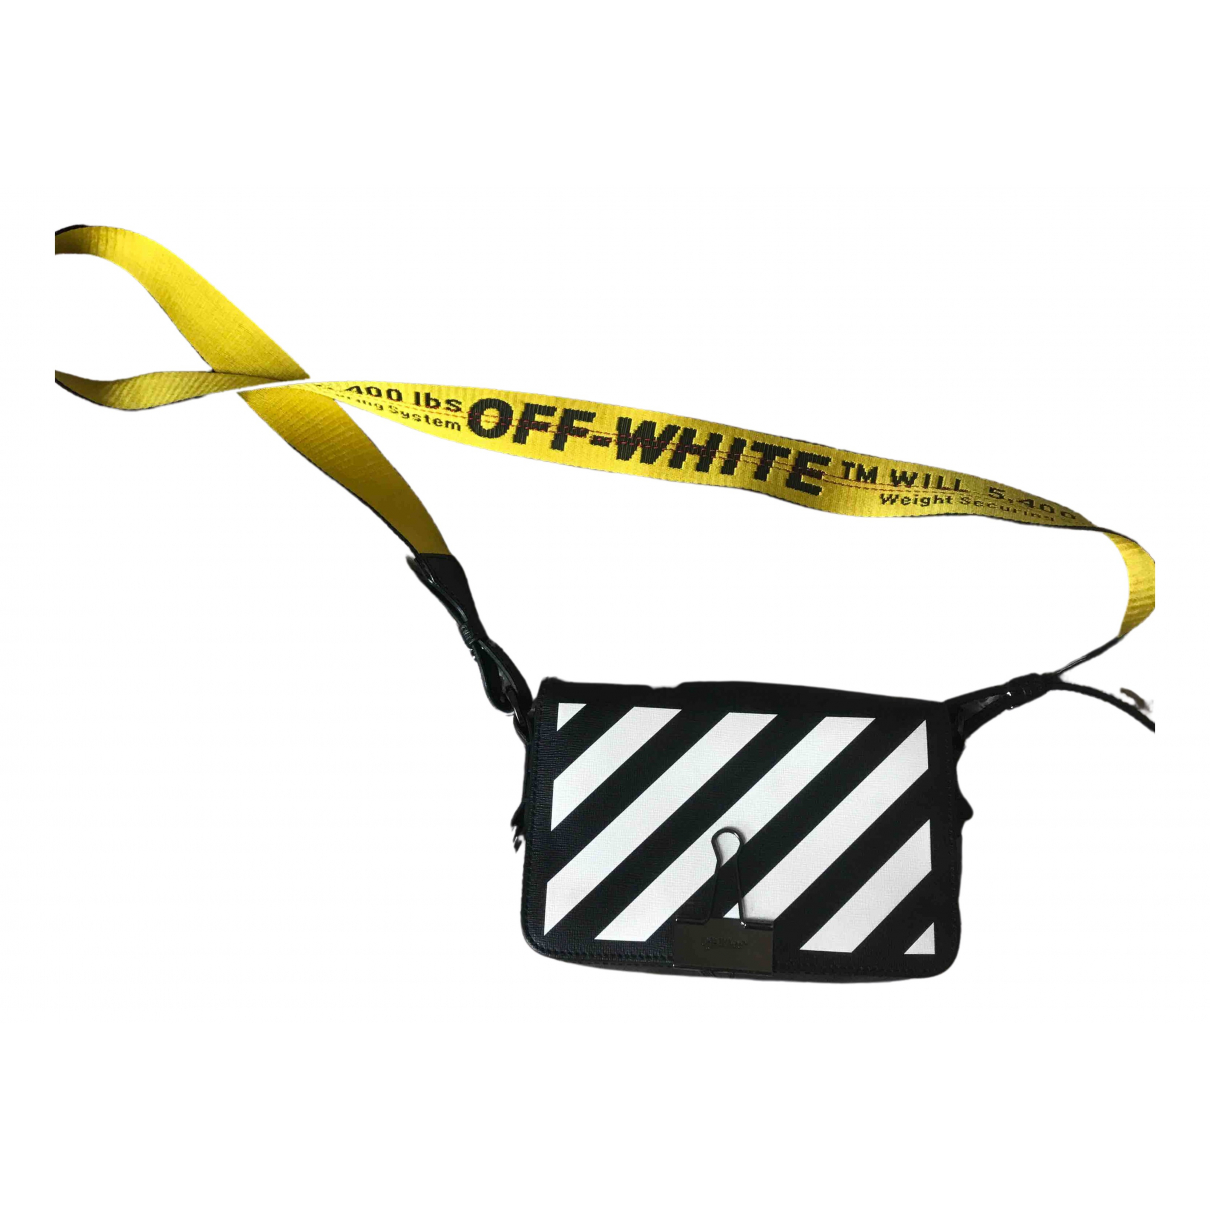 Off-white Binder Black Leather handbag for Women \N